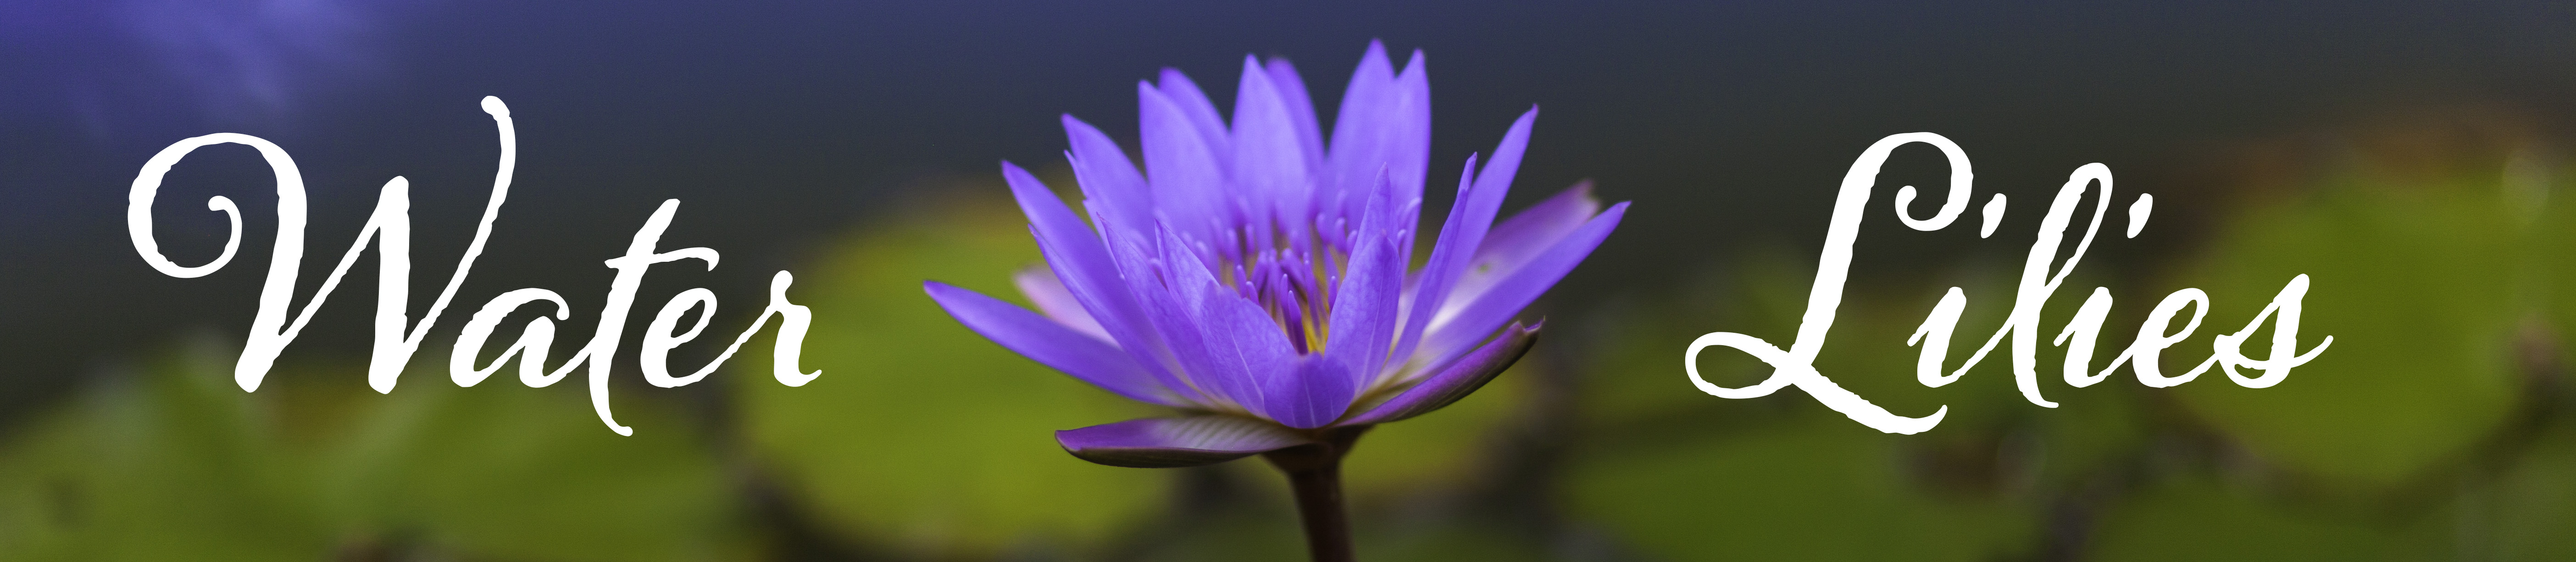 Purple Blue Water Lily